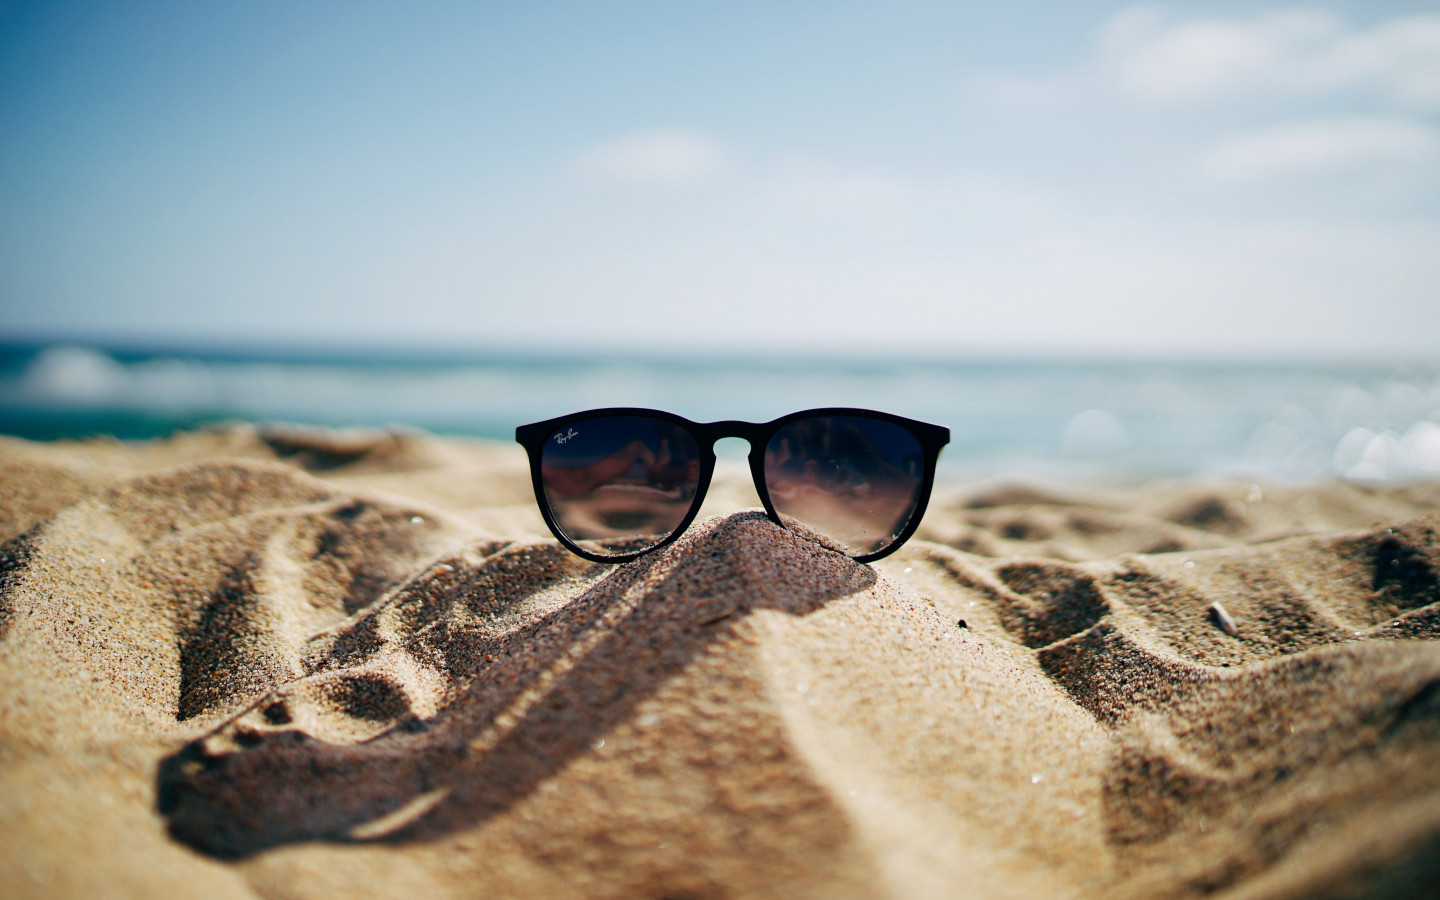 Ray Ban sunglasses on hot sand beach wallpaper 1440x900